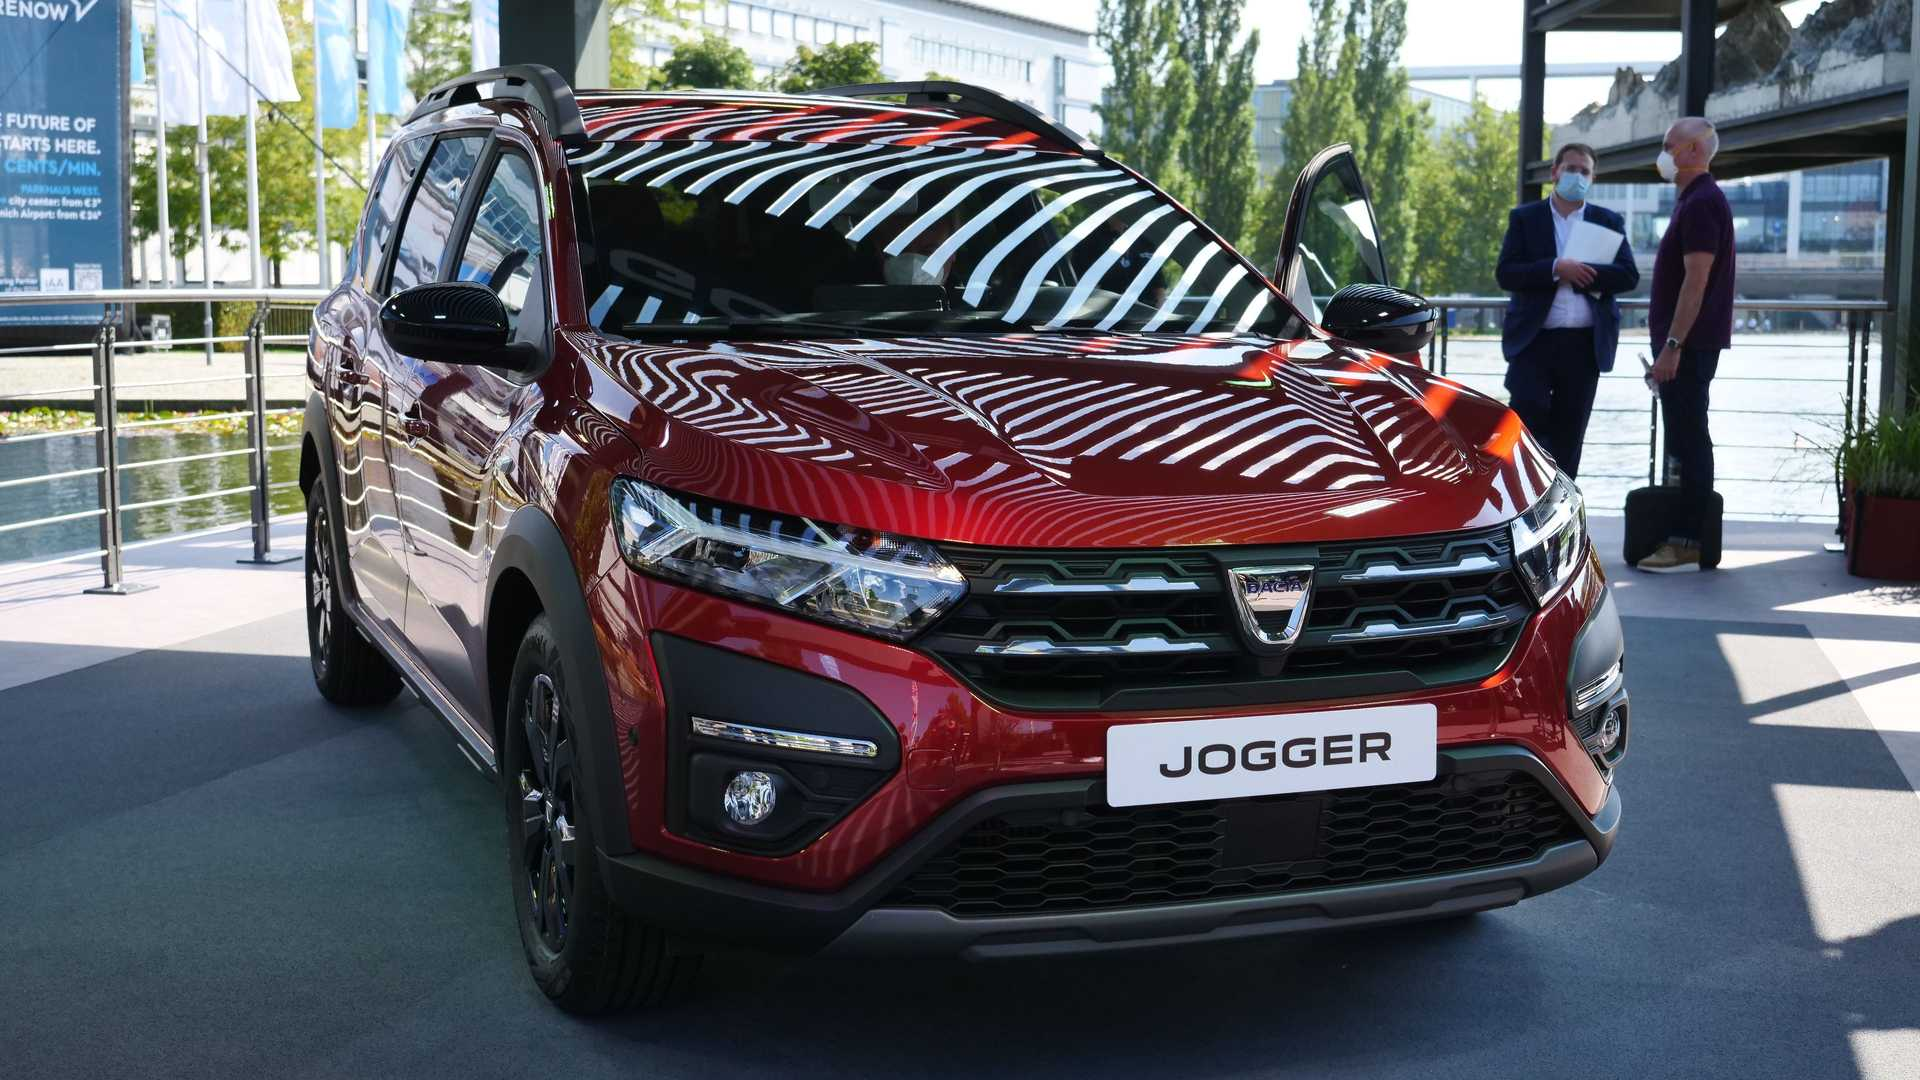 Dacia has been doing exceptionally well in Europe lately, with the latest Sandero outselling even the formidable VW Golf in July. The marque plans to expand its lineup on all fronts, and begins with introducing the wagon-shaped Jogger at the Munich expo.